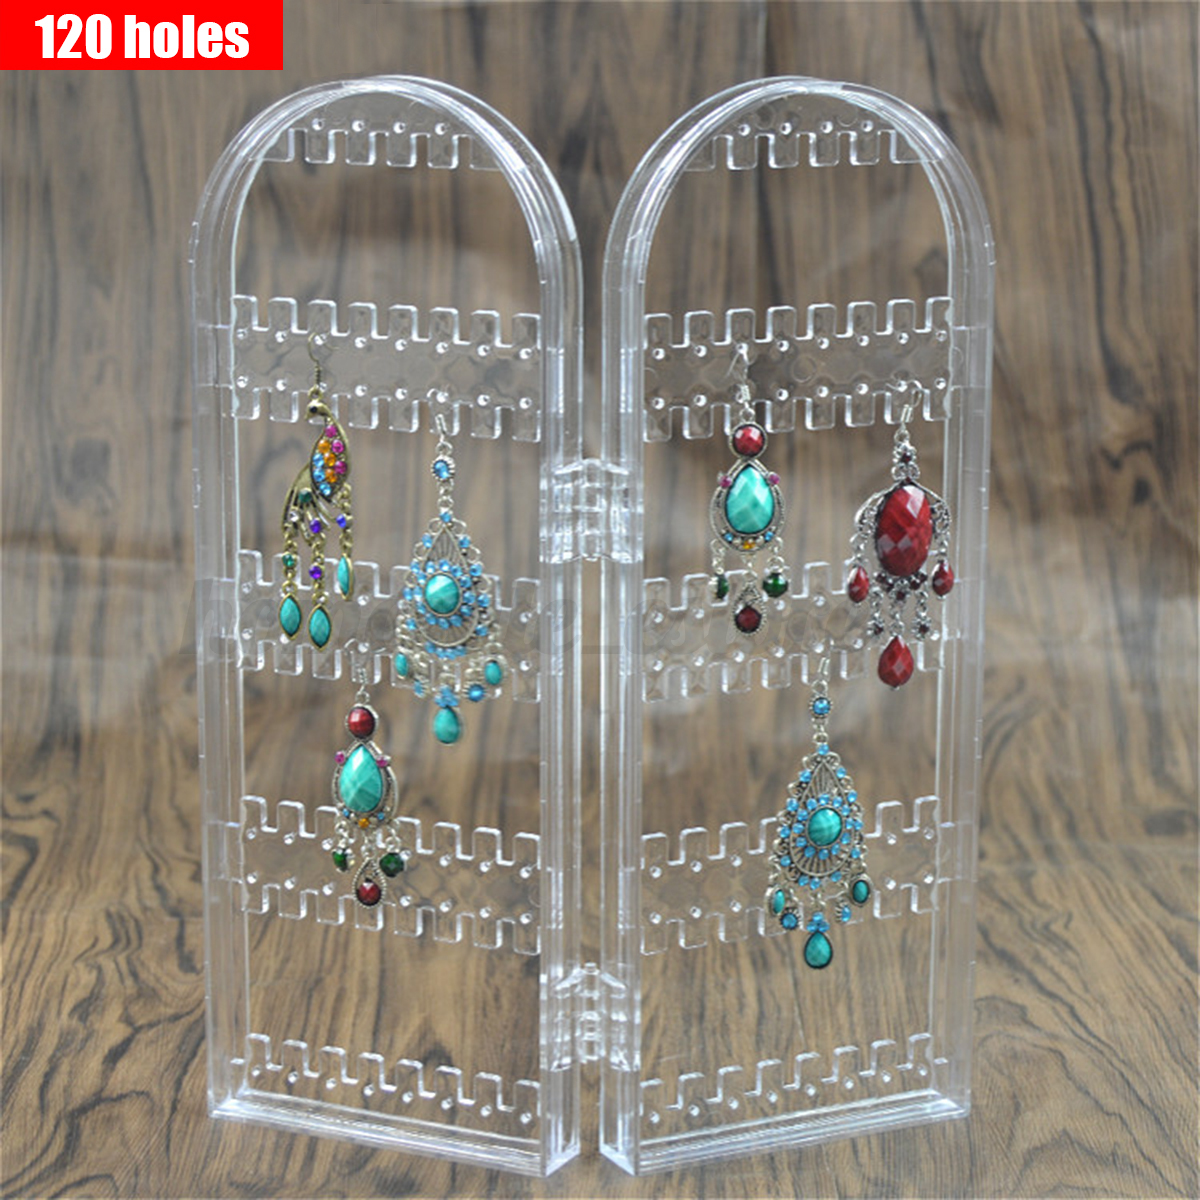 120240 Holes Earring Hanging Rack Jewelry Organizer Holder Metal